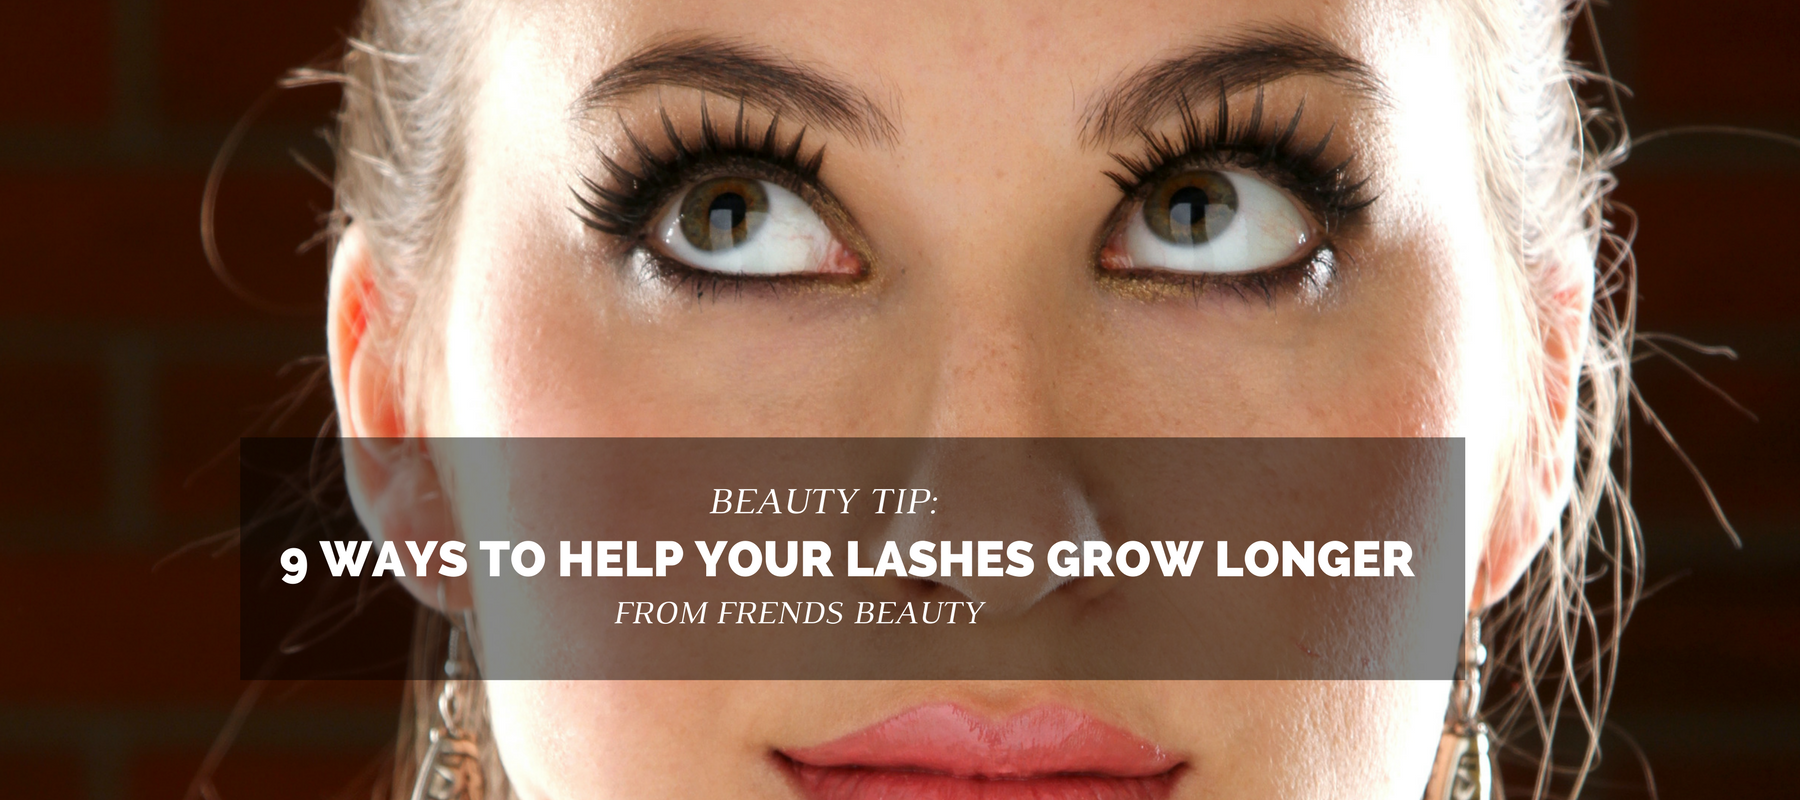 9 Ways To Help Your Lashes Grow Longer Frends Beauty Blog